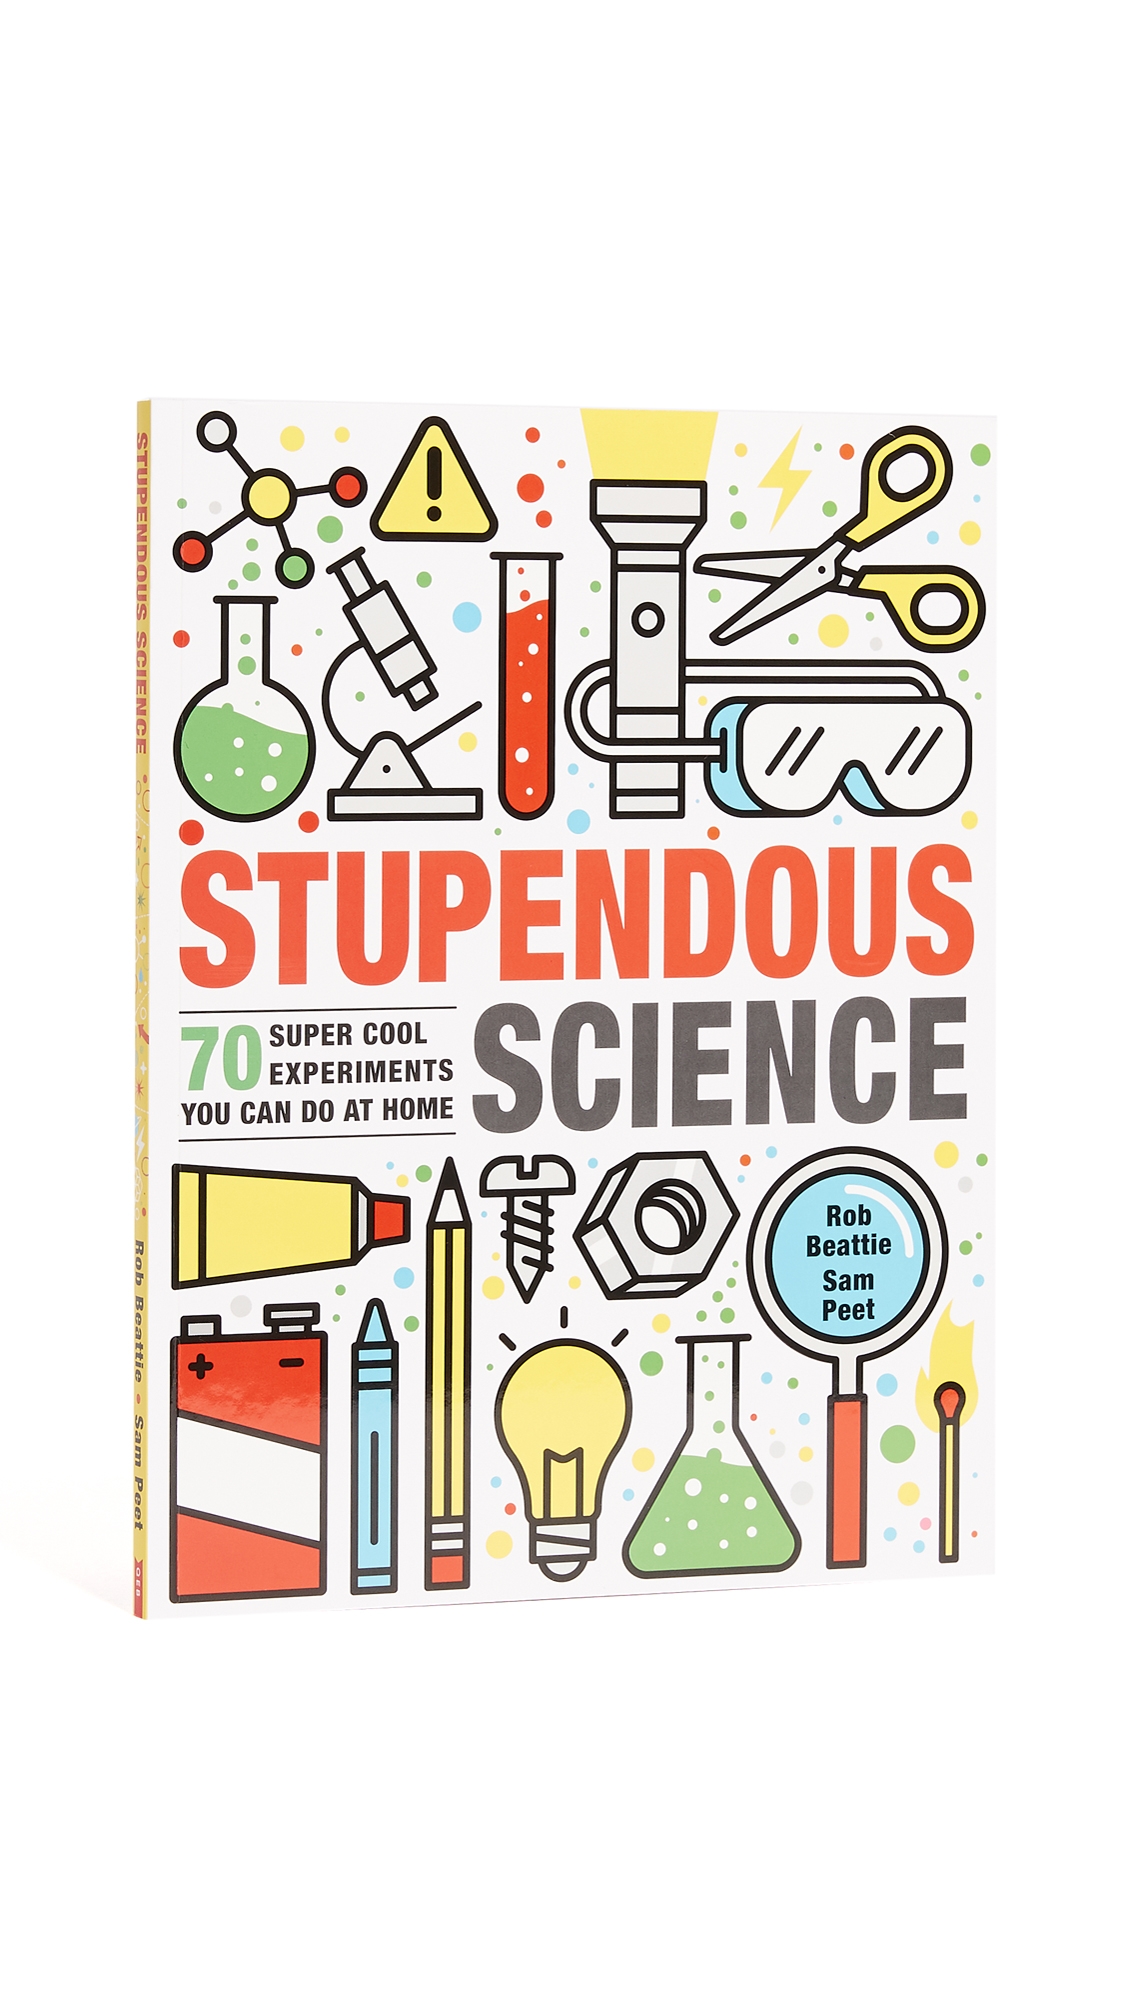 Packed with quick, achievable, and fun experiments that can be performed at home and with basic ingredients and equipment, this book of 70 experiments will entertain budding scientists for hours as they learn lessons in physics, chemistry, biology, and technology. Experiments include making a periscope, a smartphone projector, a lava lamp, and using salt to make ice cream. Imported, China. By Rob Beattie and Sam Peet. Paperback. 96 pages. Imprint: QEB Publishing. ISBN: 978-168972571 Measurements Width: 0.5in / 1cm Height: 11.75in / 30cm Length: 8.75in / 22.5cm